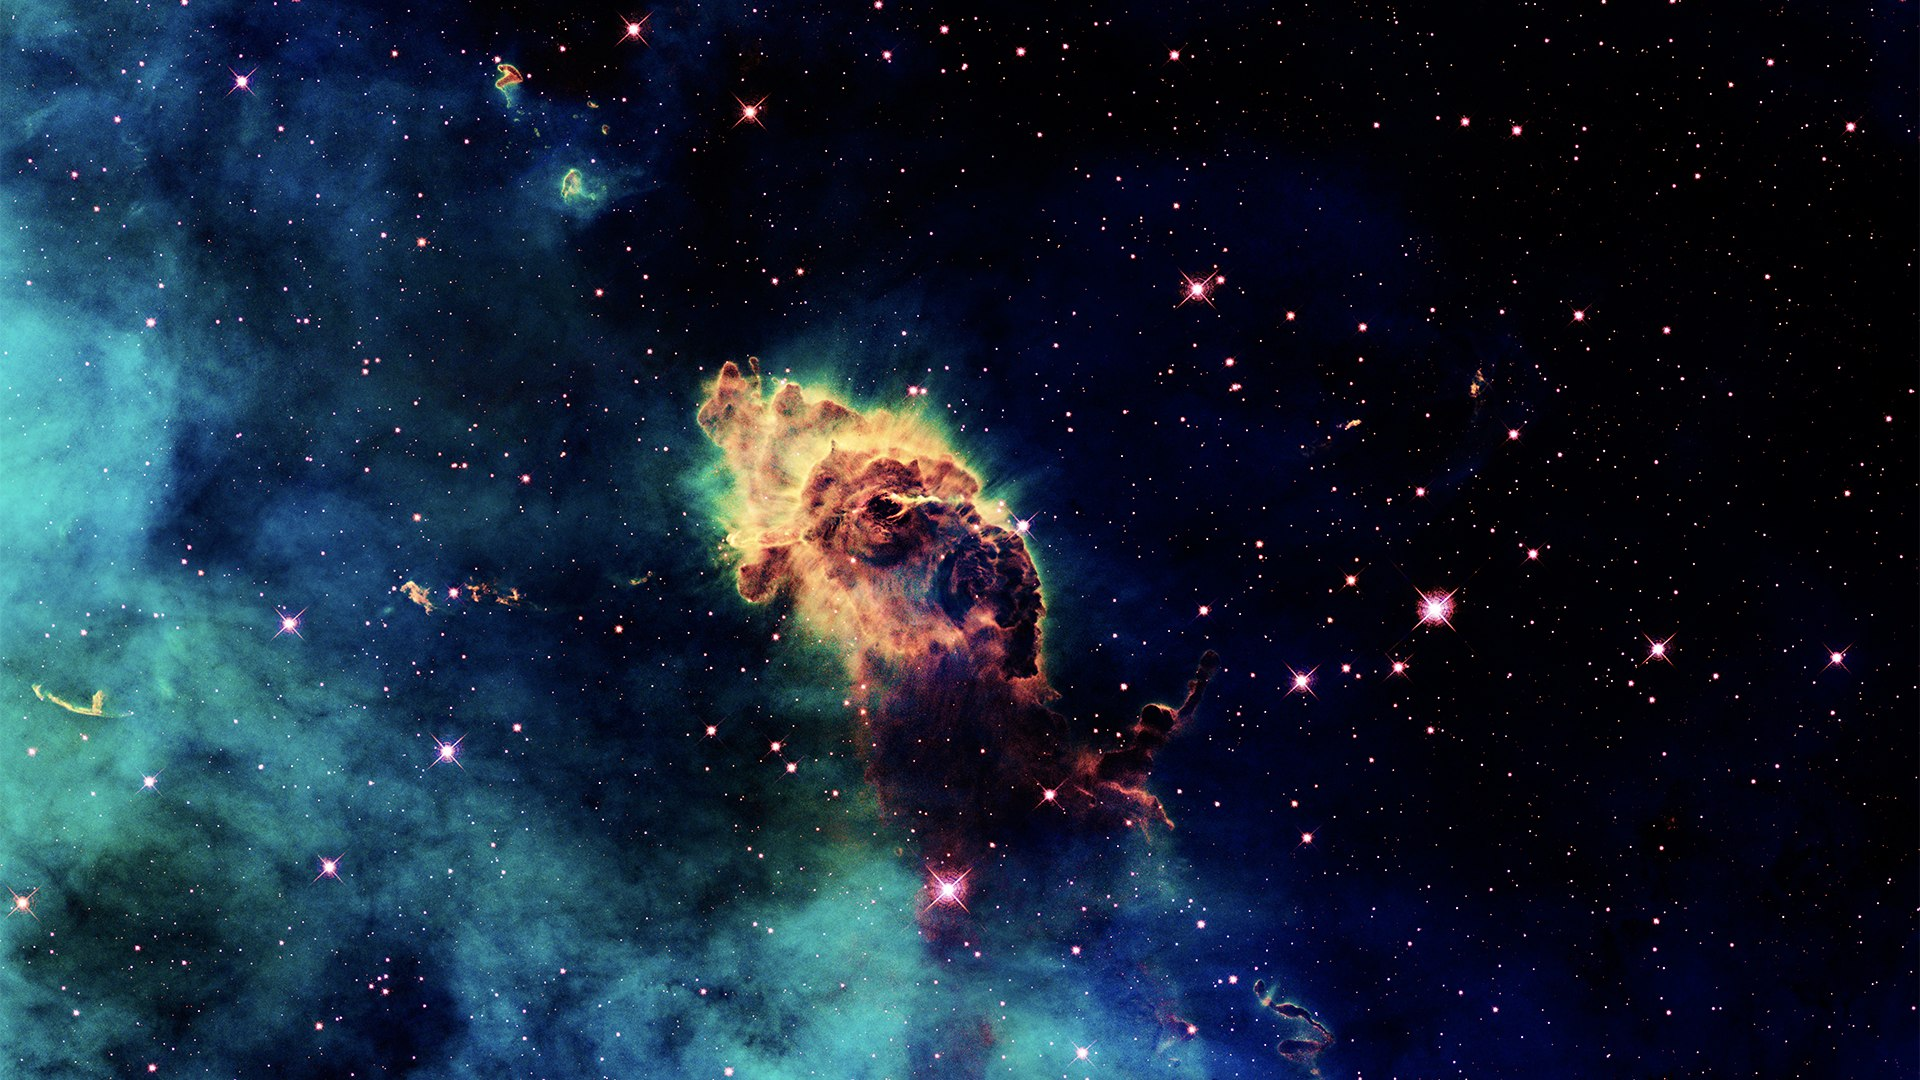 50 hd space wallpapers backgrounds for free download - Hd wallpaper for laptop 14 inch ...